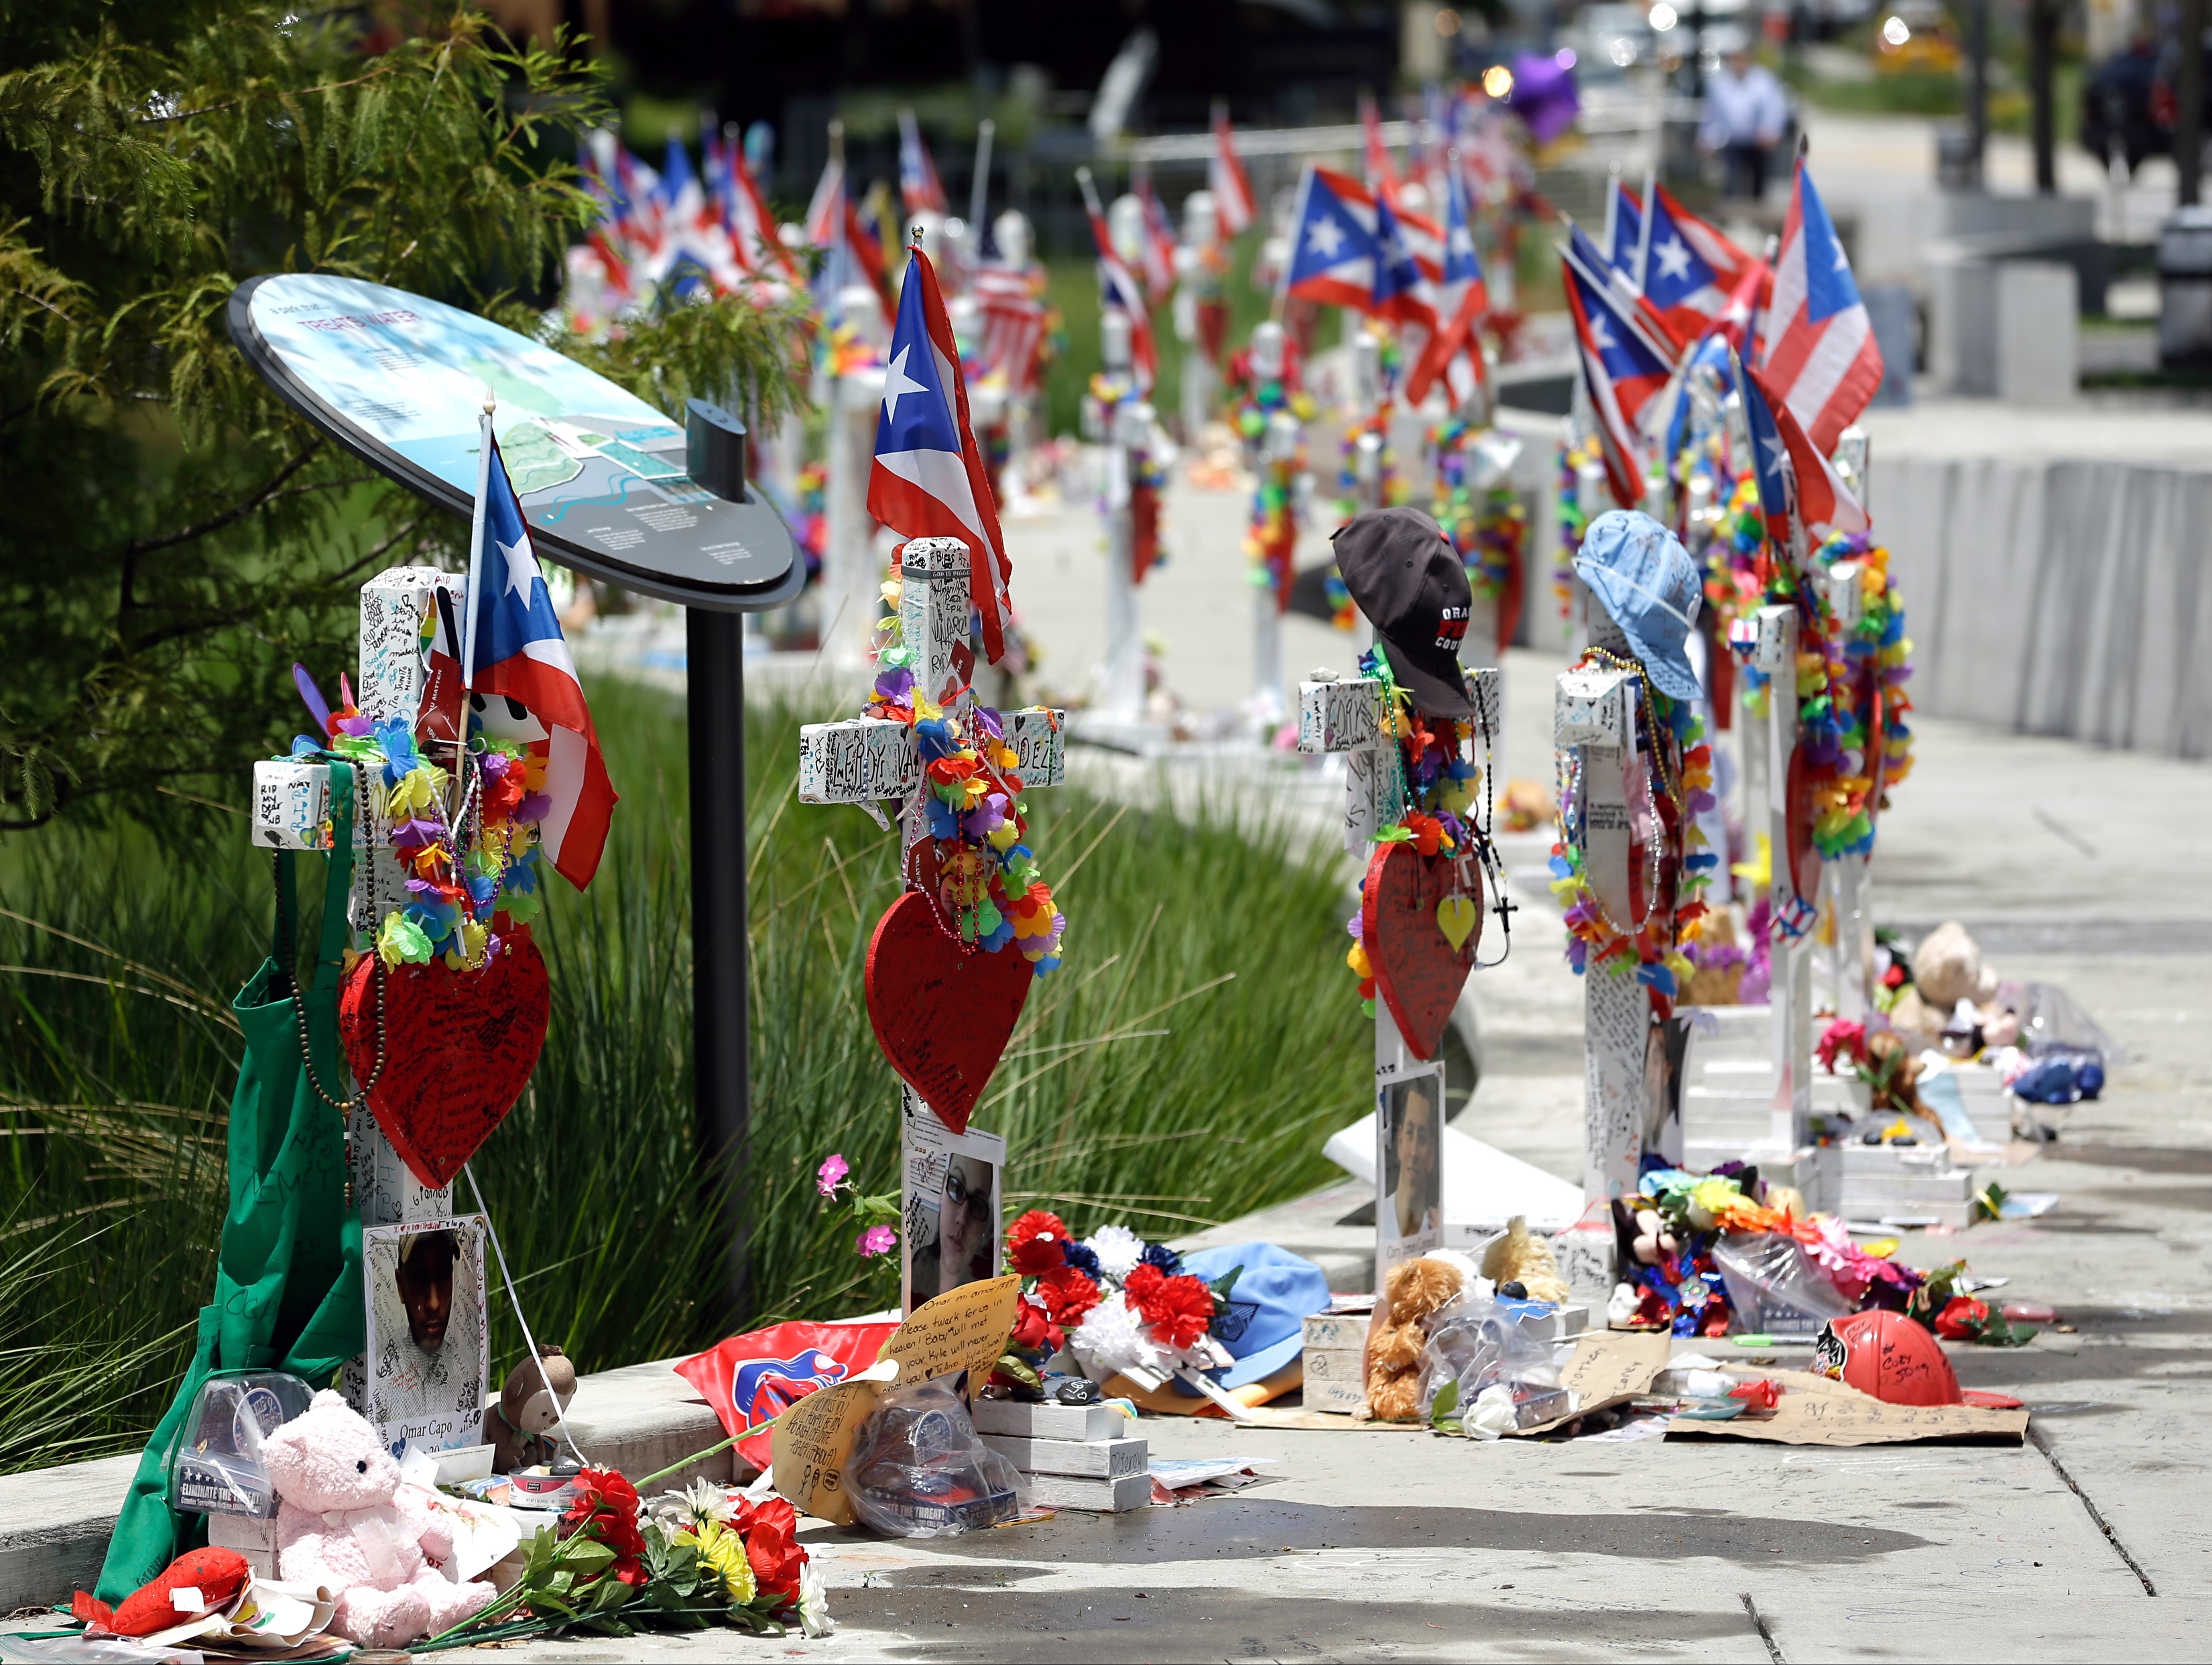 The 49 crosses representing the 49 victims of the Pulse nightclub shooting are seen Monday, July 11, 2016, near the Orlando Regional Medical Center in Orlando, Fla.